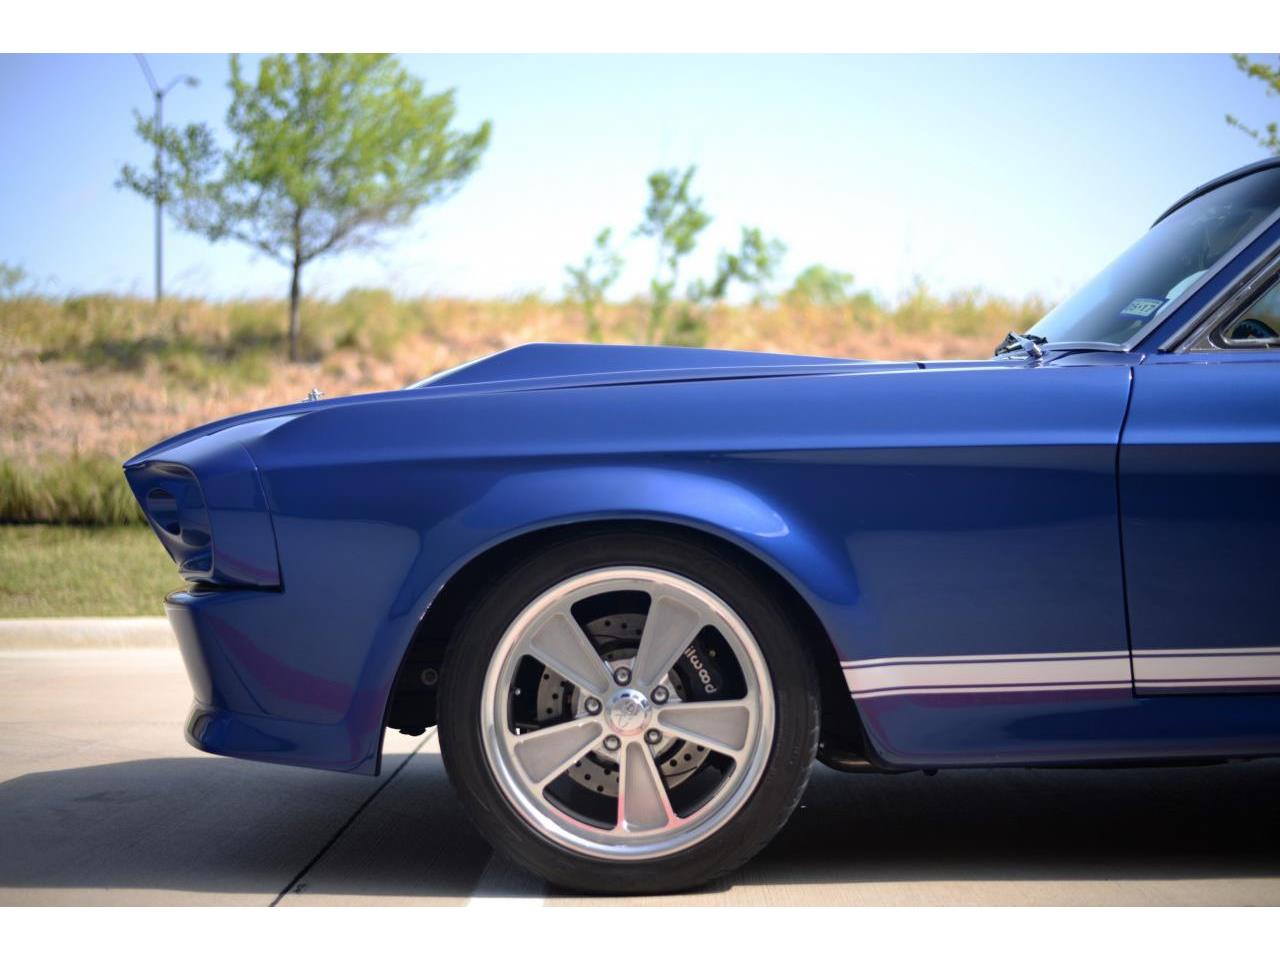 Large Picture of Classic '67 Mustang - $79,000.00 Offered by Gateway Classic Cars - Dallas - L5RP